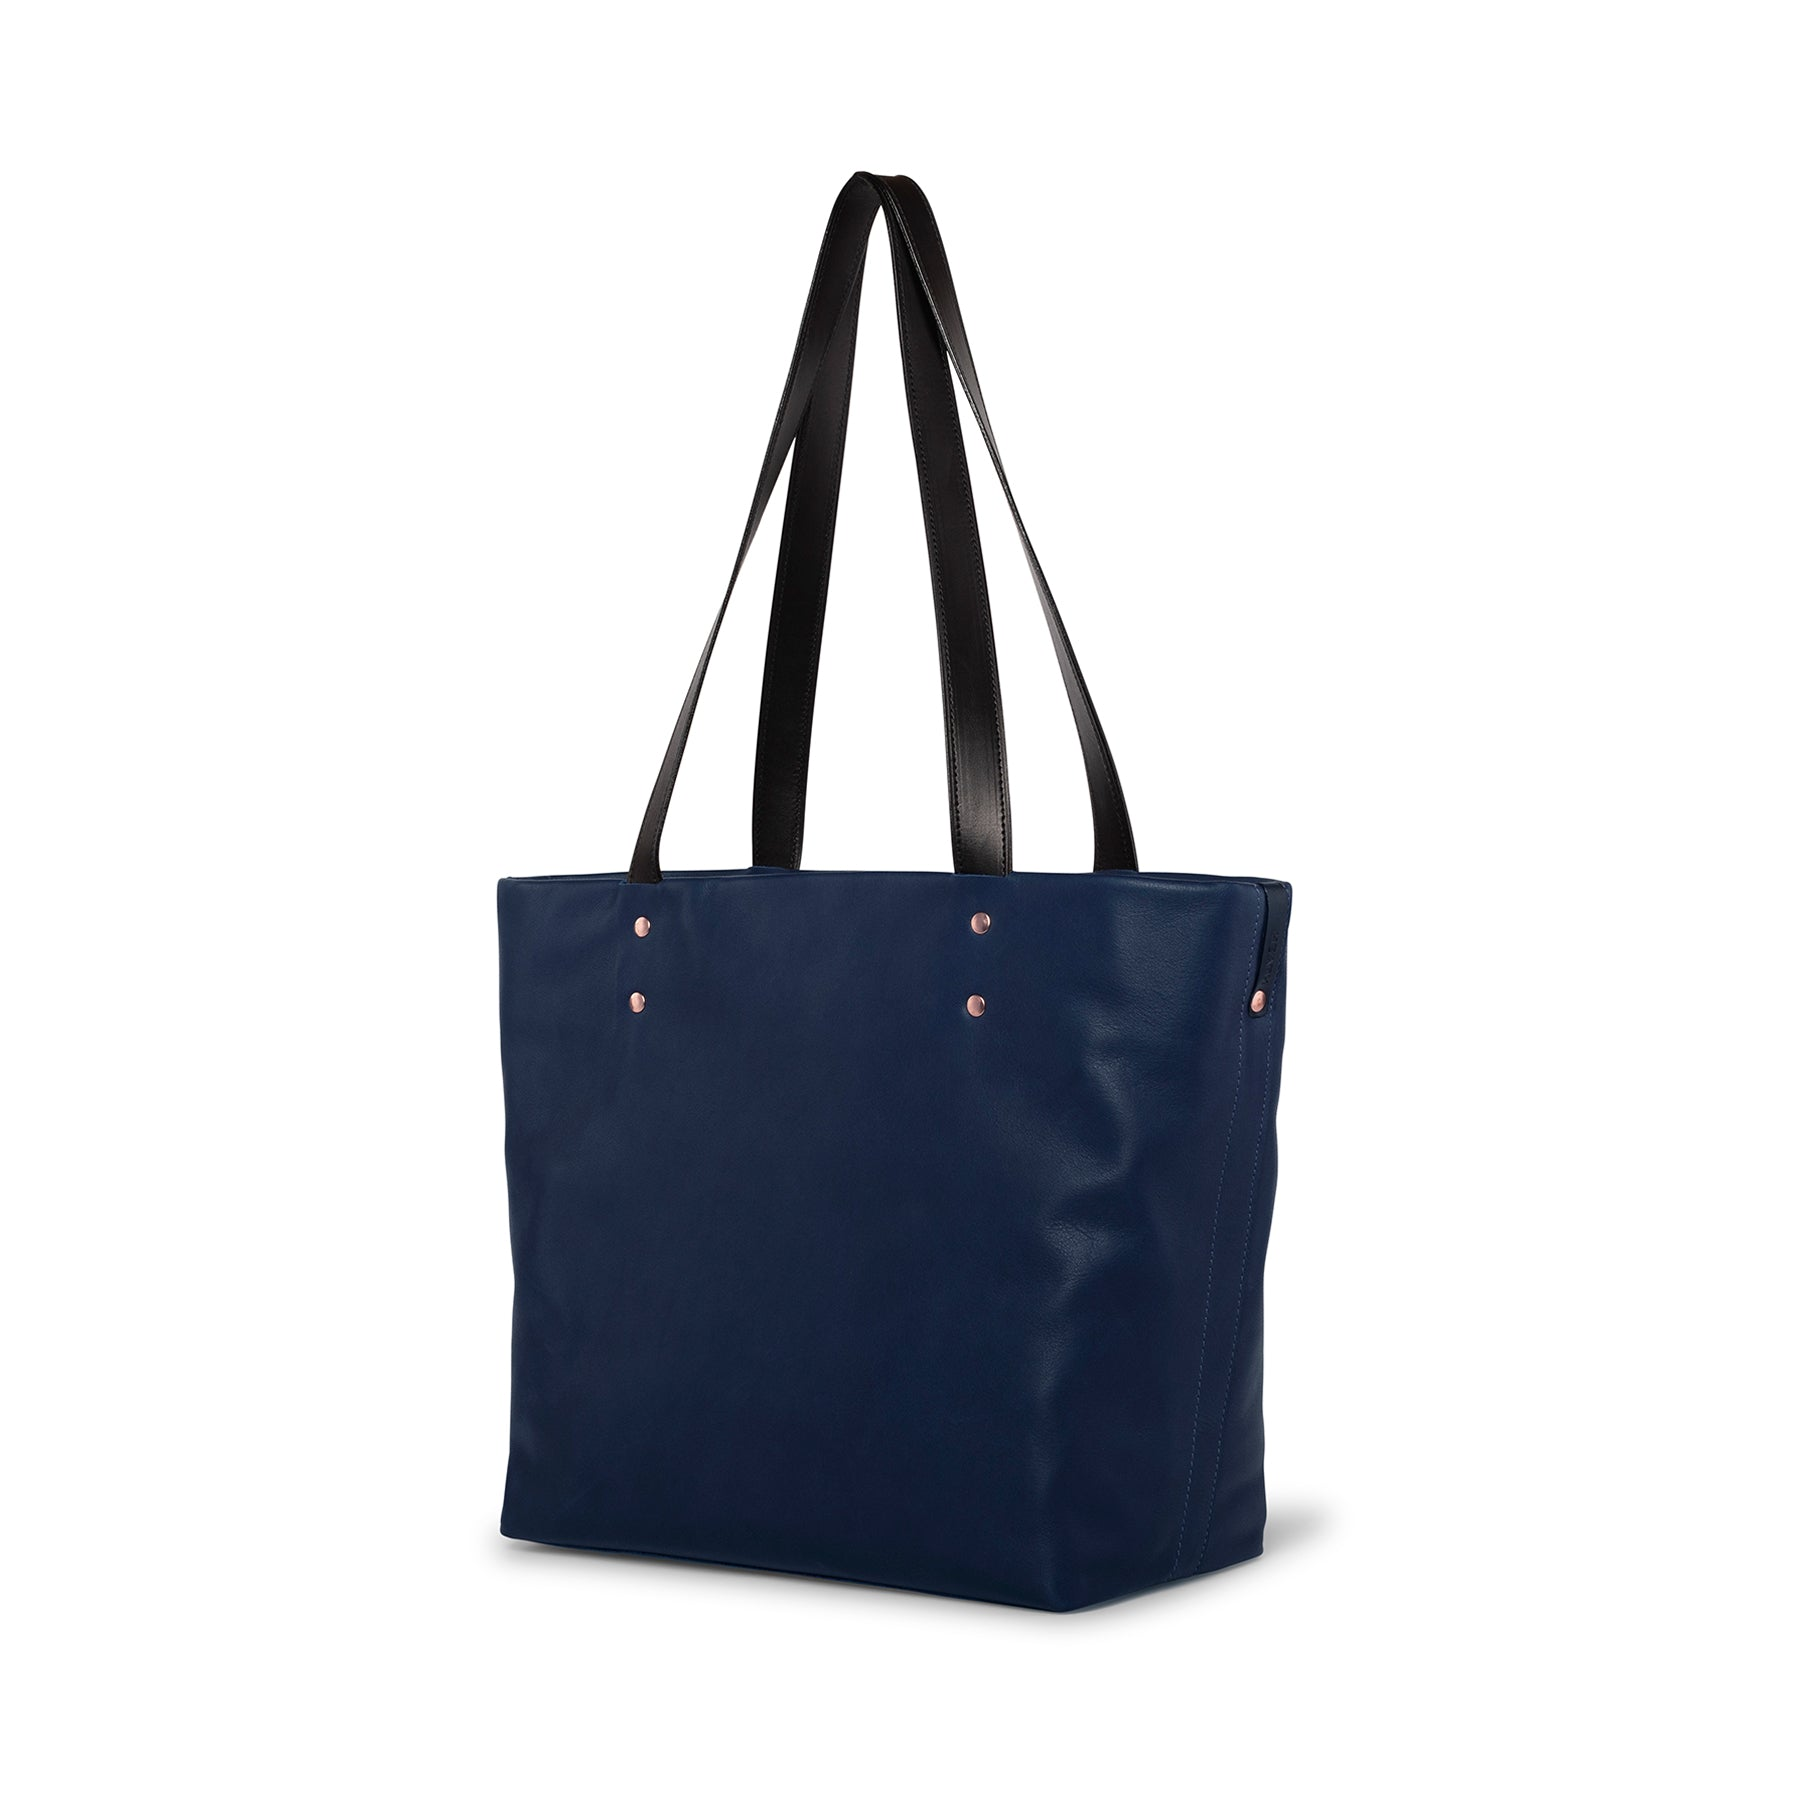 Leather Tote in Midnight Zoom Image 1